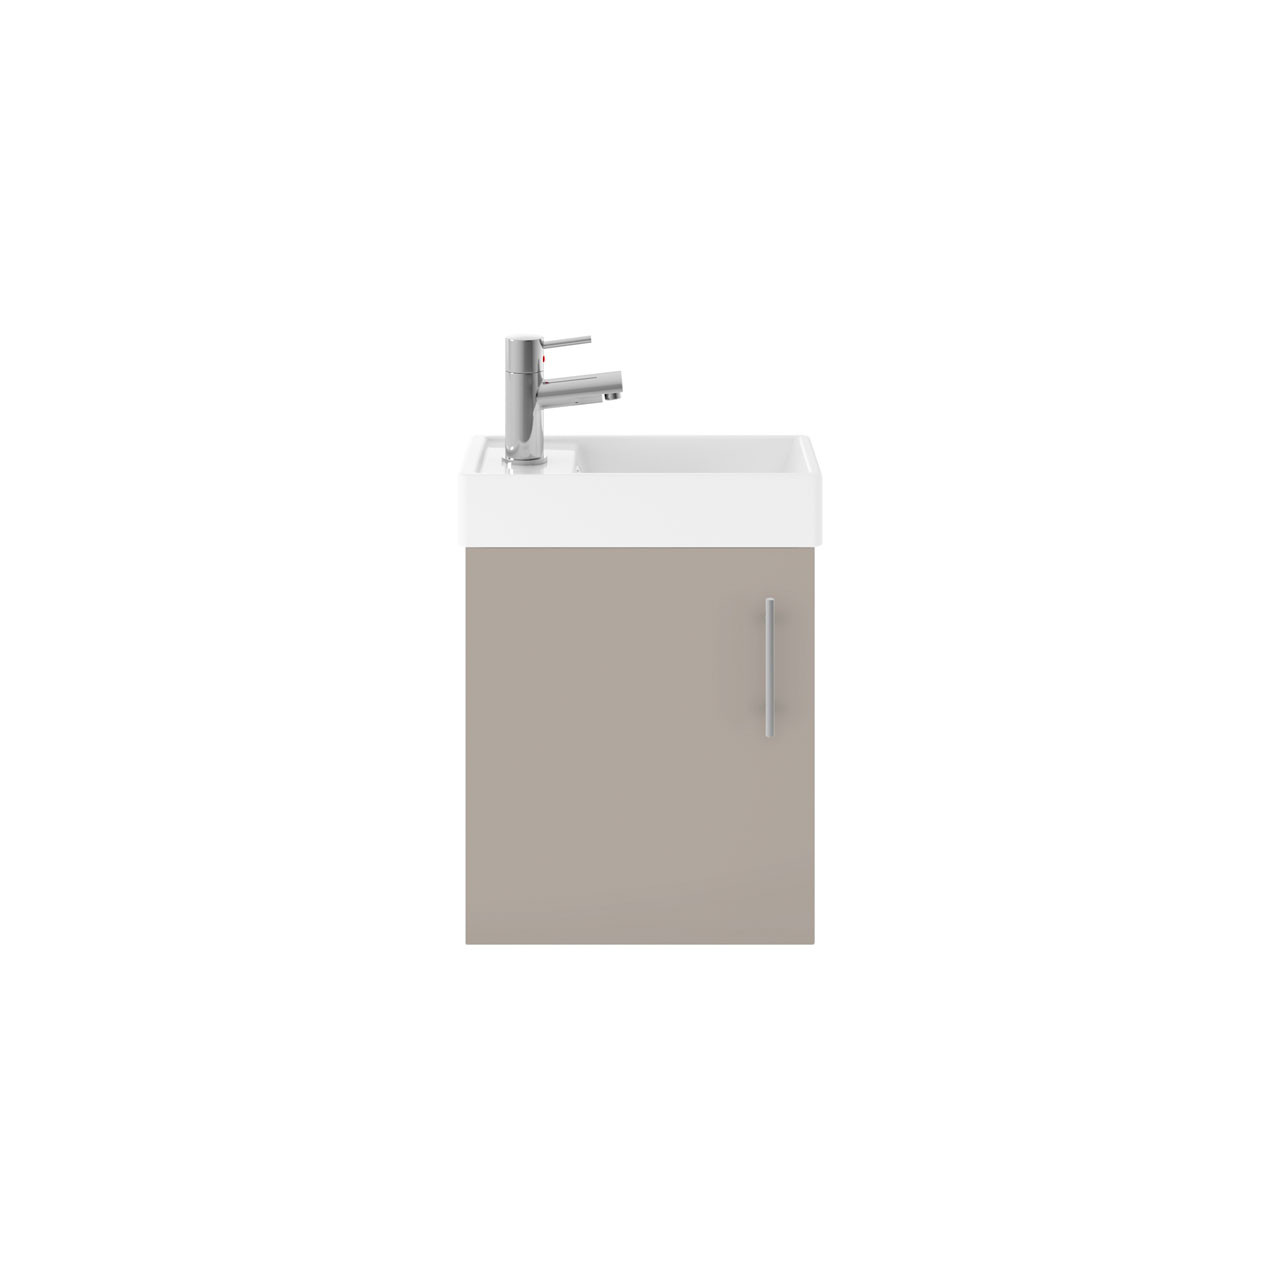 Premier Valut Stone Grey 400mm Wall Hung Single Door Vanity Unit and Compact Basin - MIN012